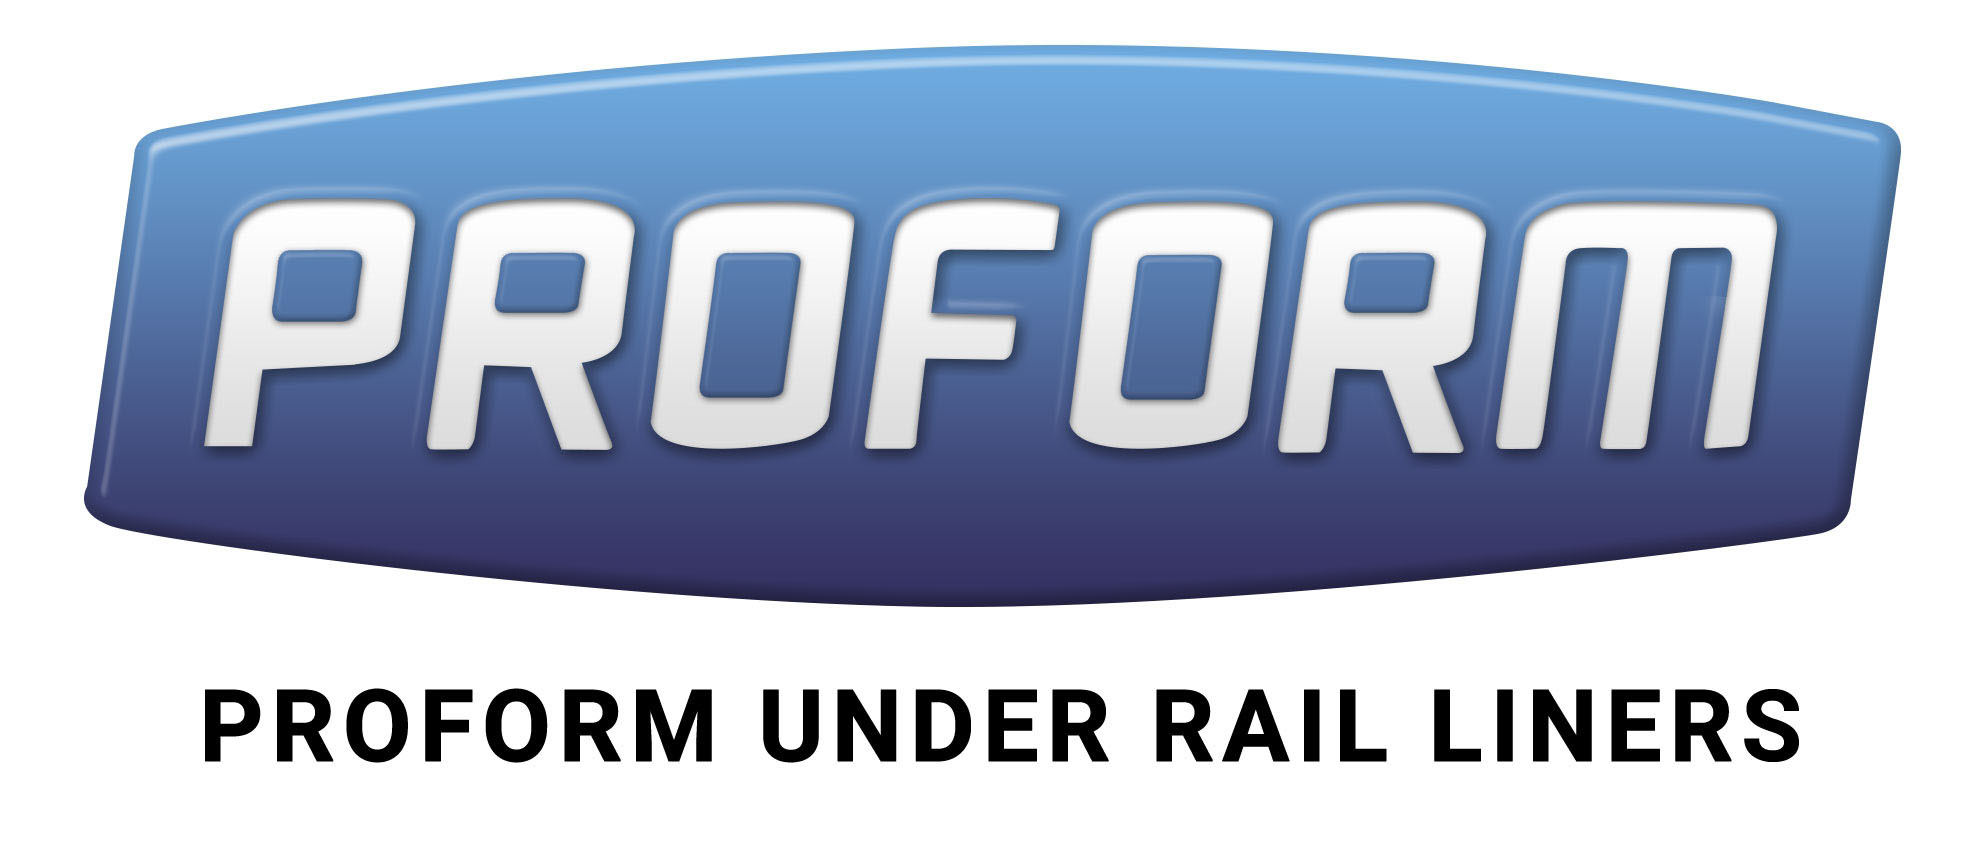 Proform under rail liner